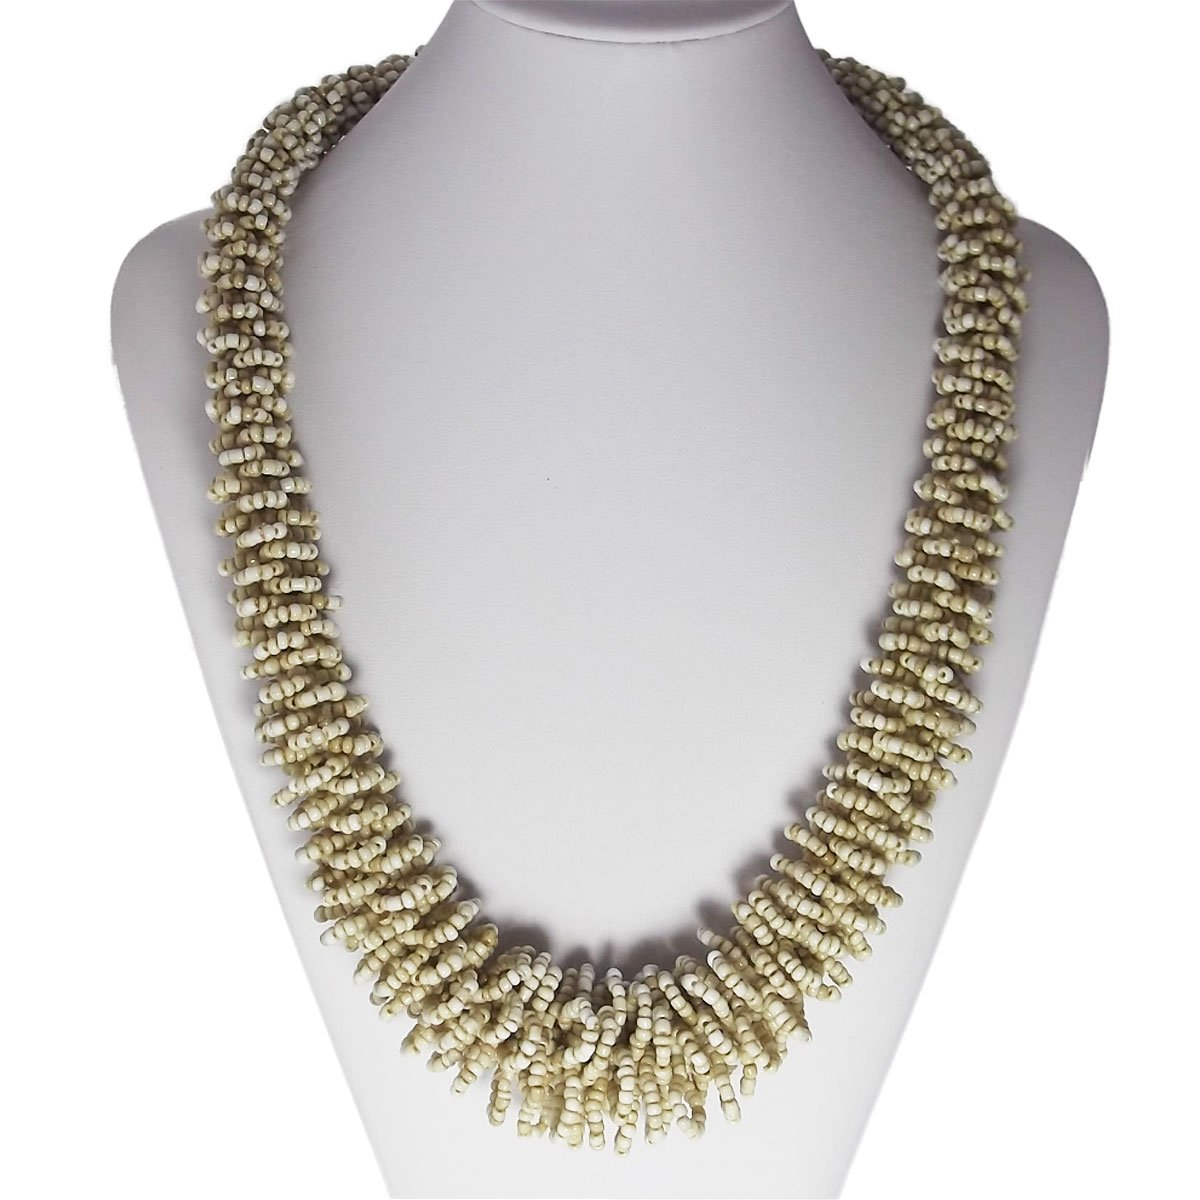 Ice Bijoux Statement Beads Necklaces for Women Long - Cream 25 inches - Jewelry London Collection